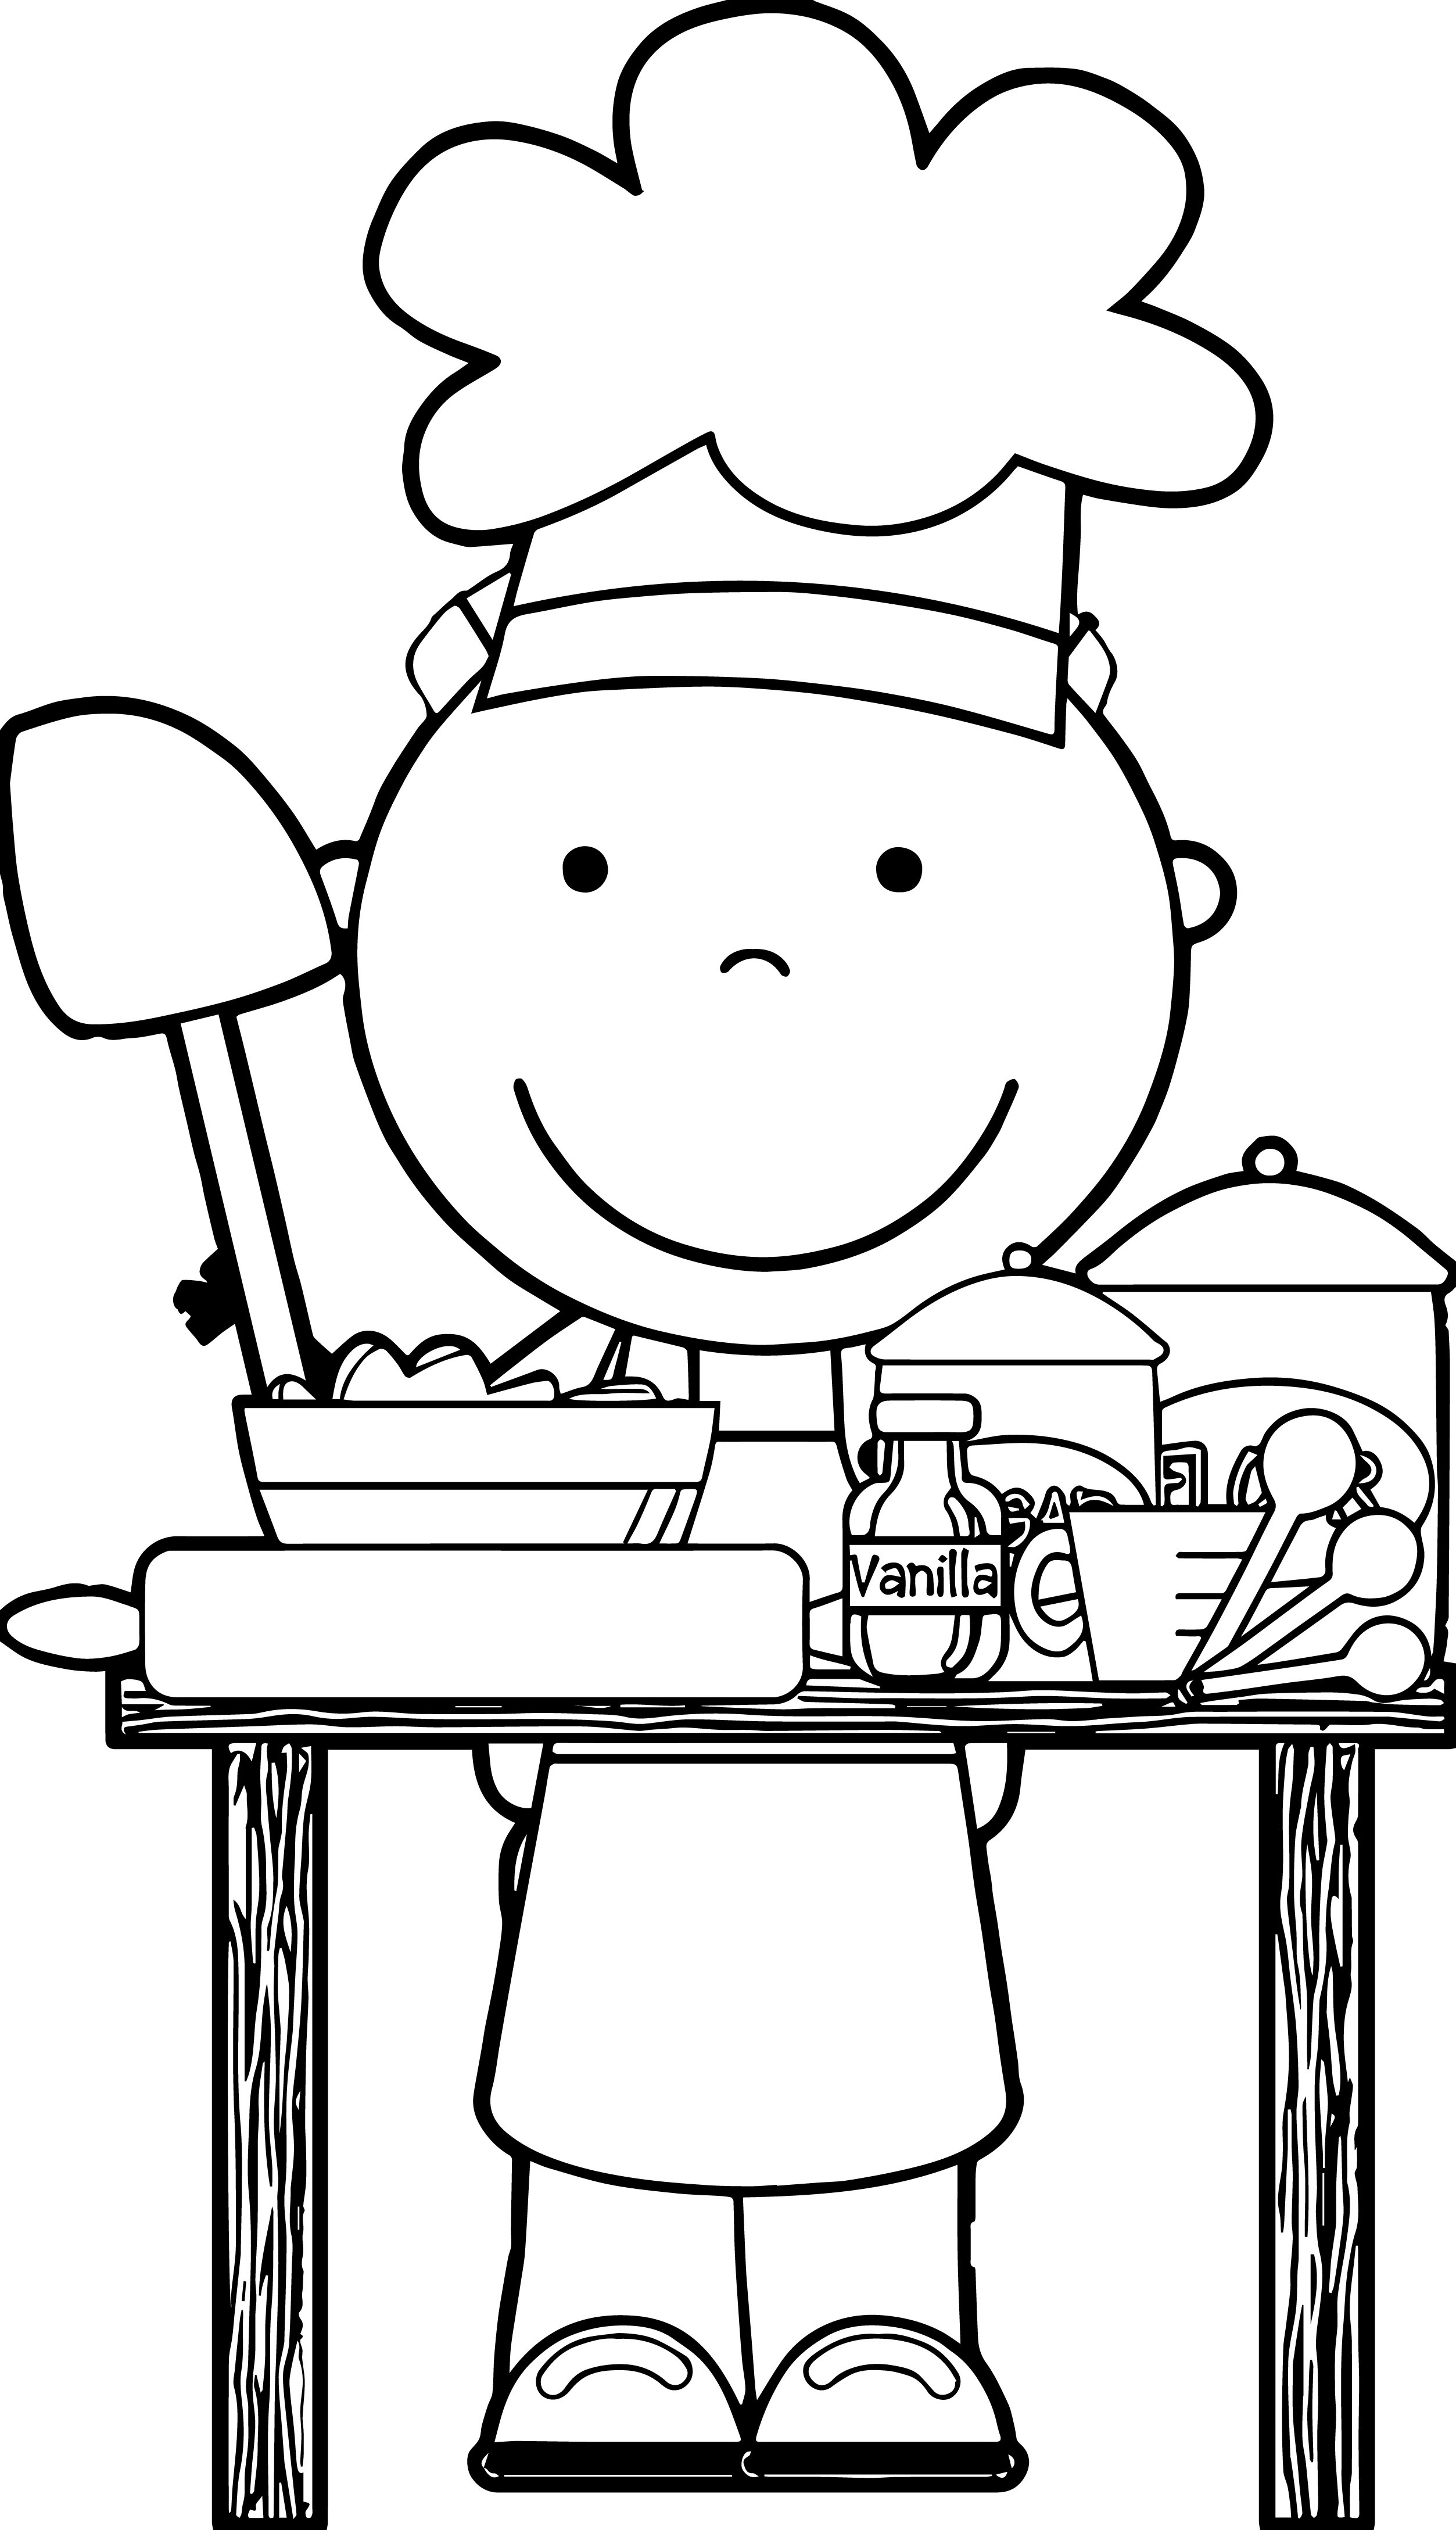 Chef clipart black and white, Chef black and white.